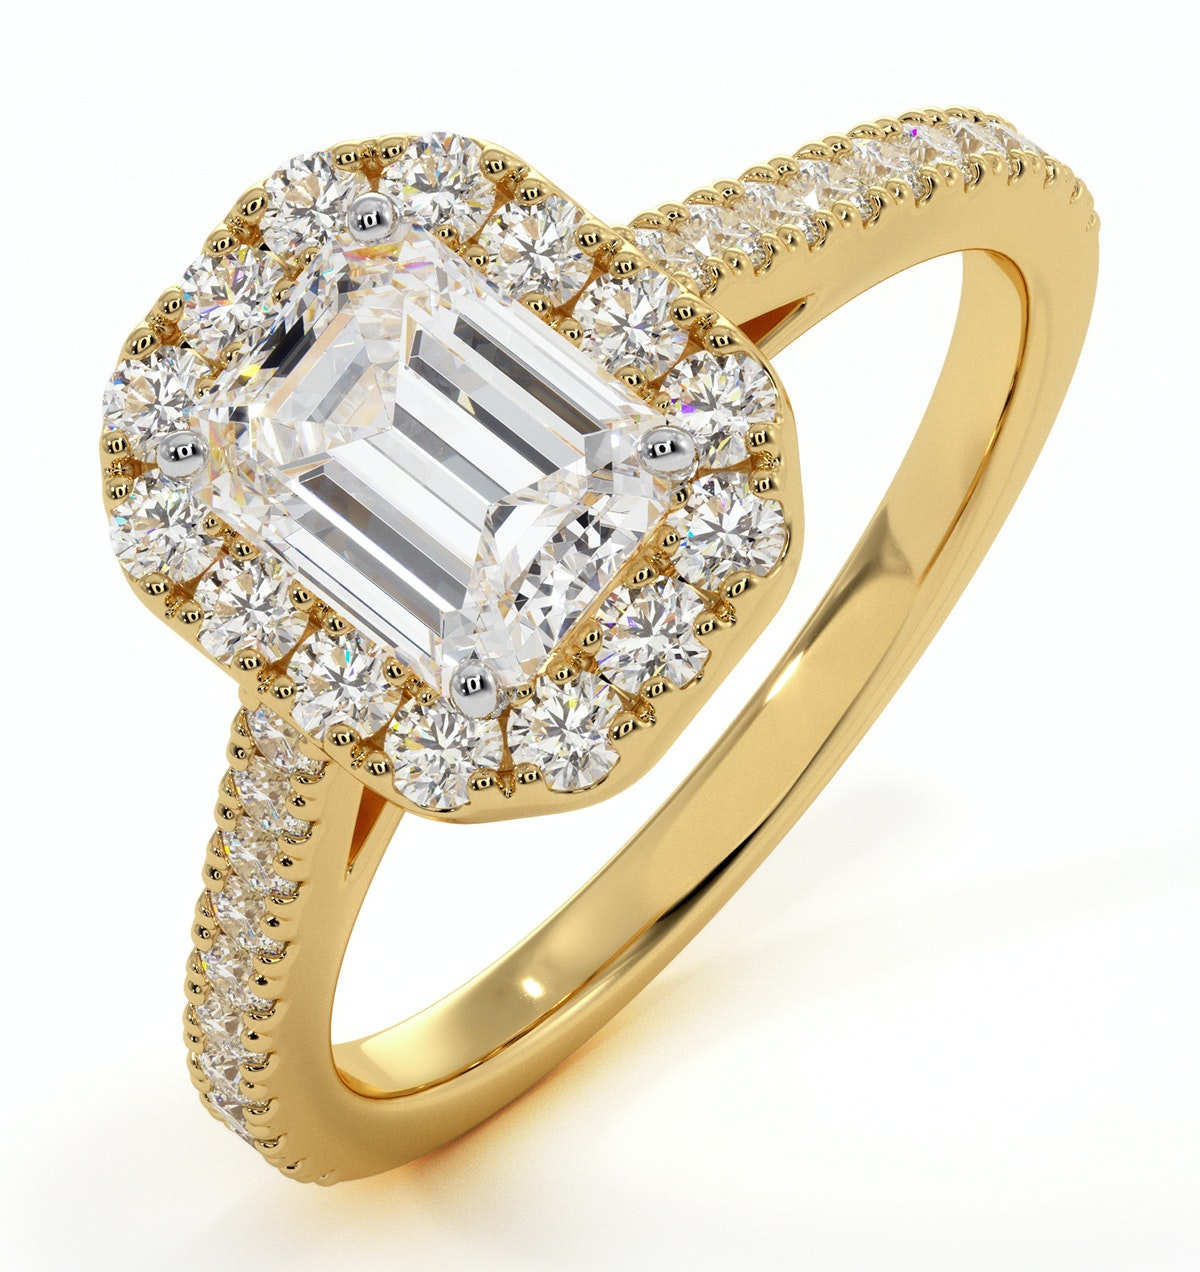 Annabelle GIA Diamond Halo Engagement Ring in 18K Gold 1.65ct G/SI2